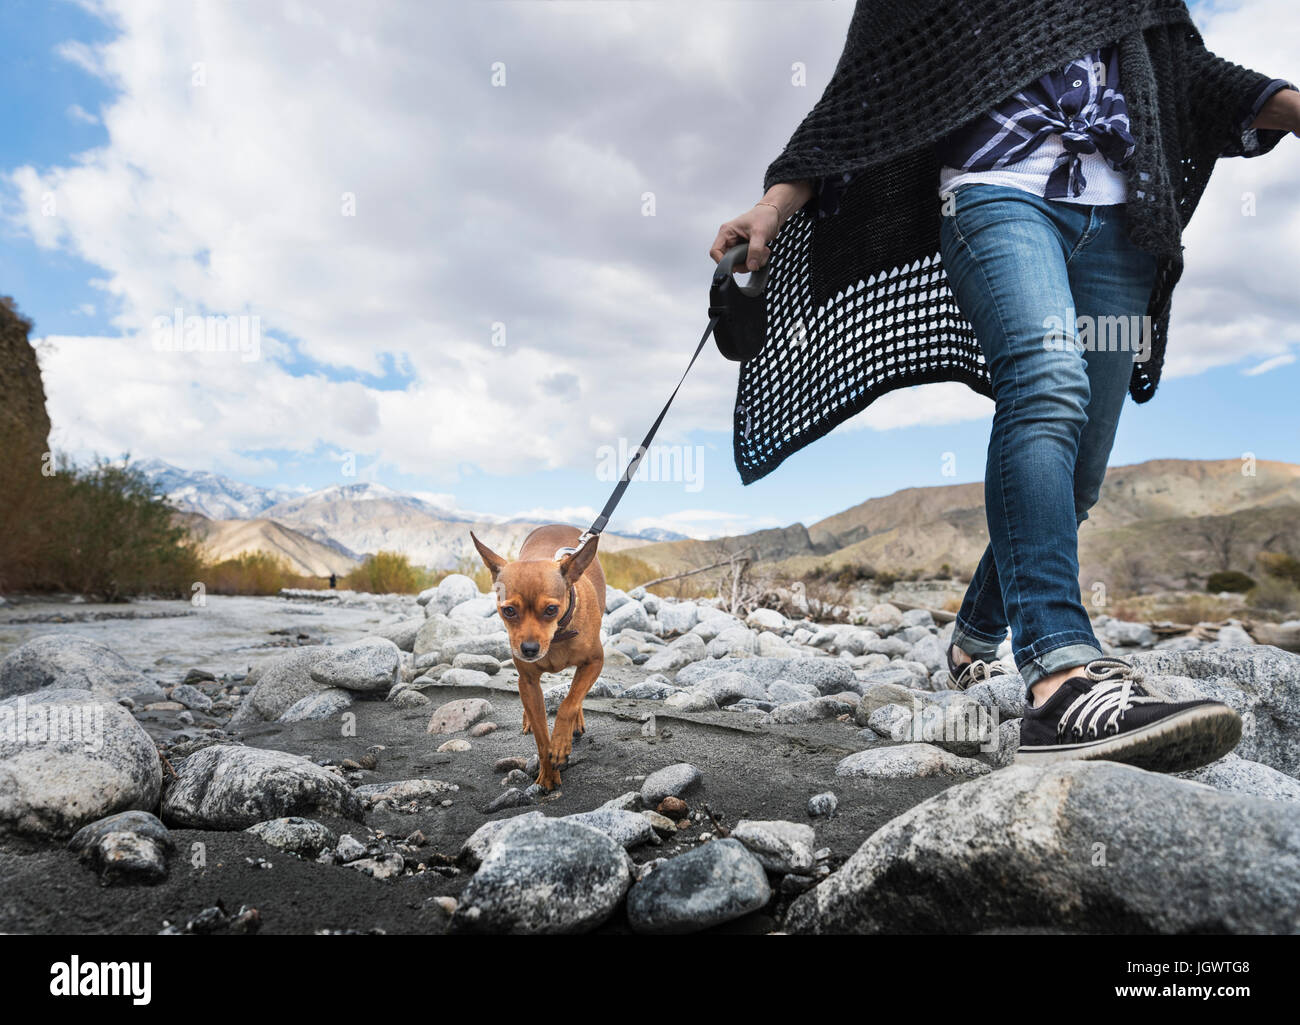 Neck down view of woman walking dog on rocky riverbed - Stock Image